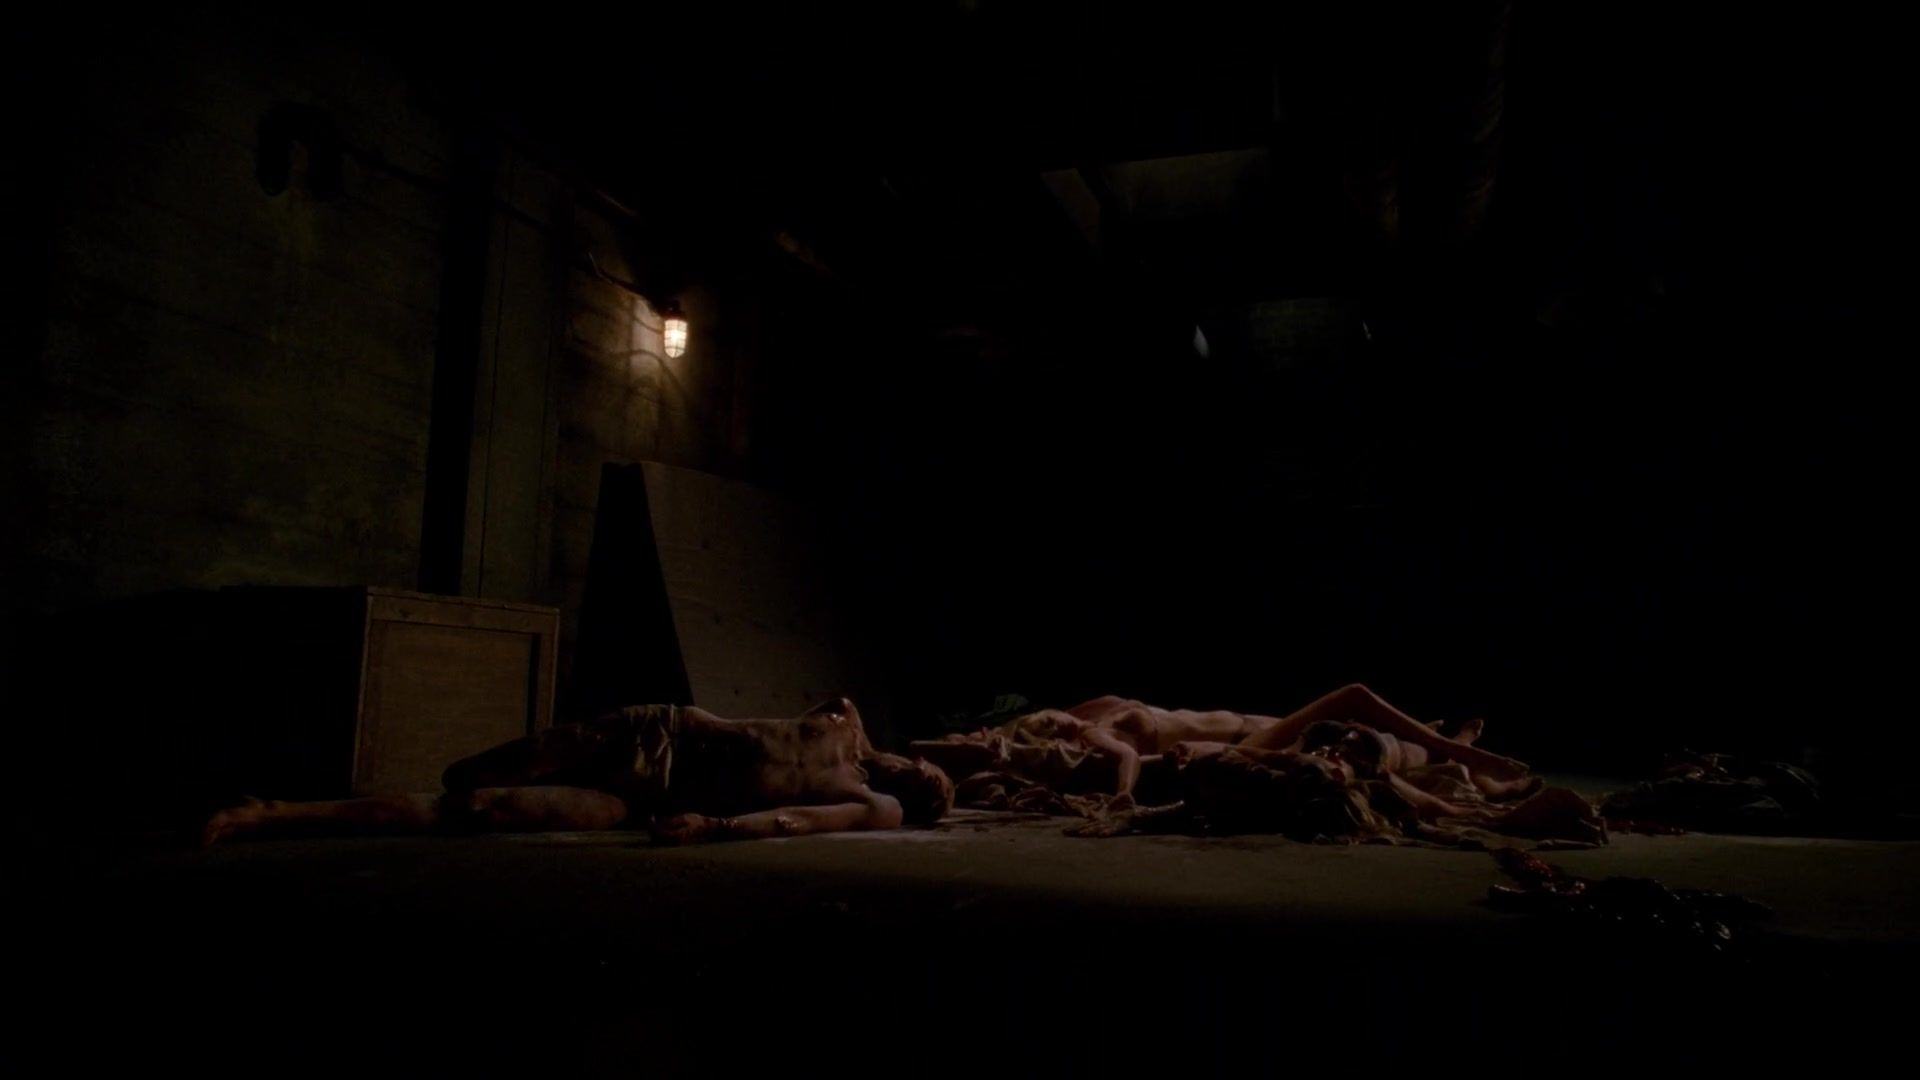 Episode 2: Chutes and Ladders - American Horror Story S05E02 Chutes and Ladders 1080p KISSTHEMGOODBYE NET 0174 - American Horror Story :: high quality screencaps gallery